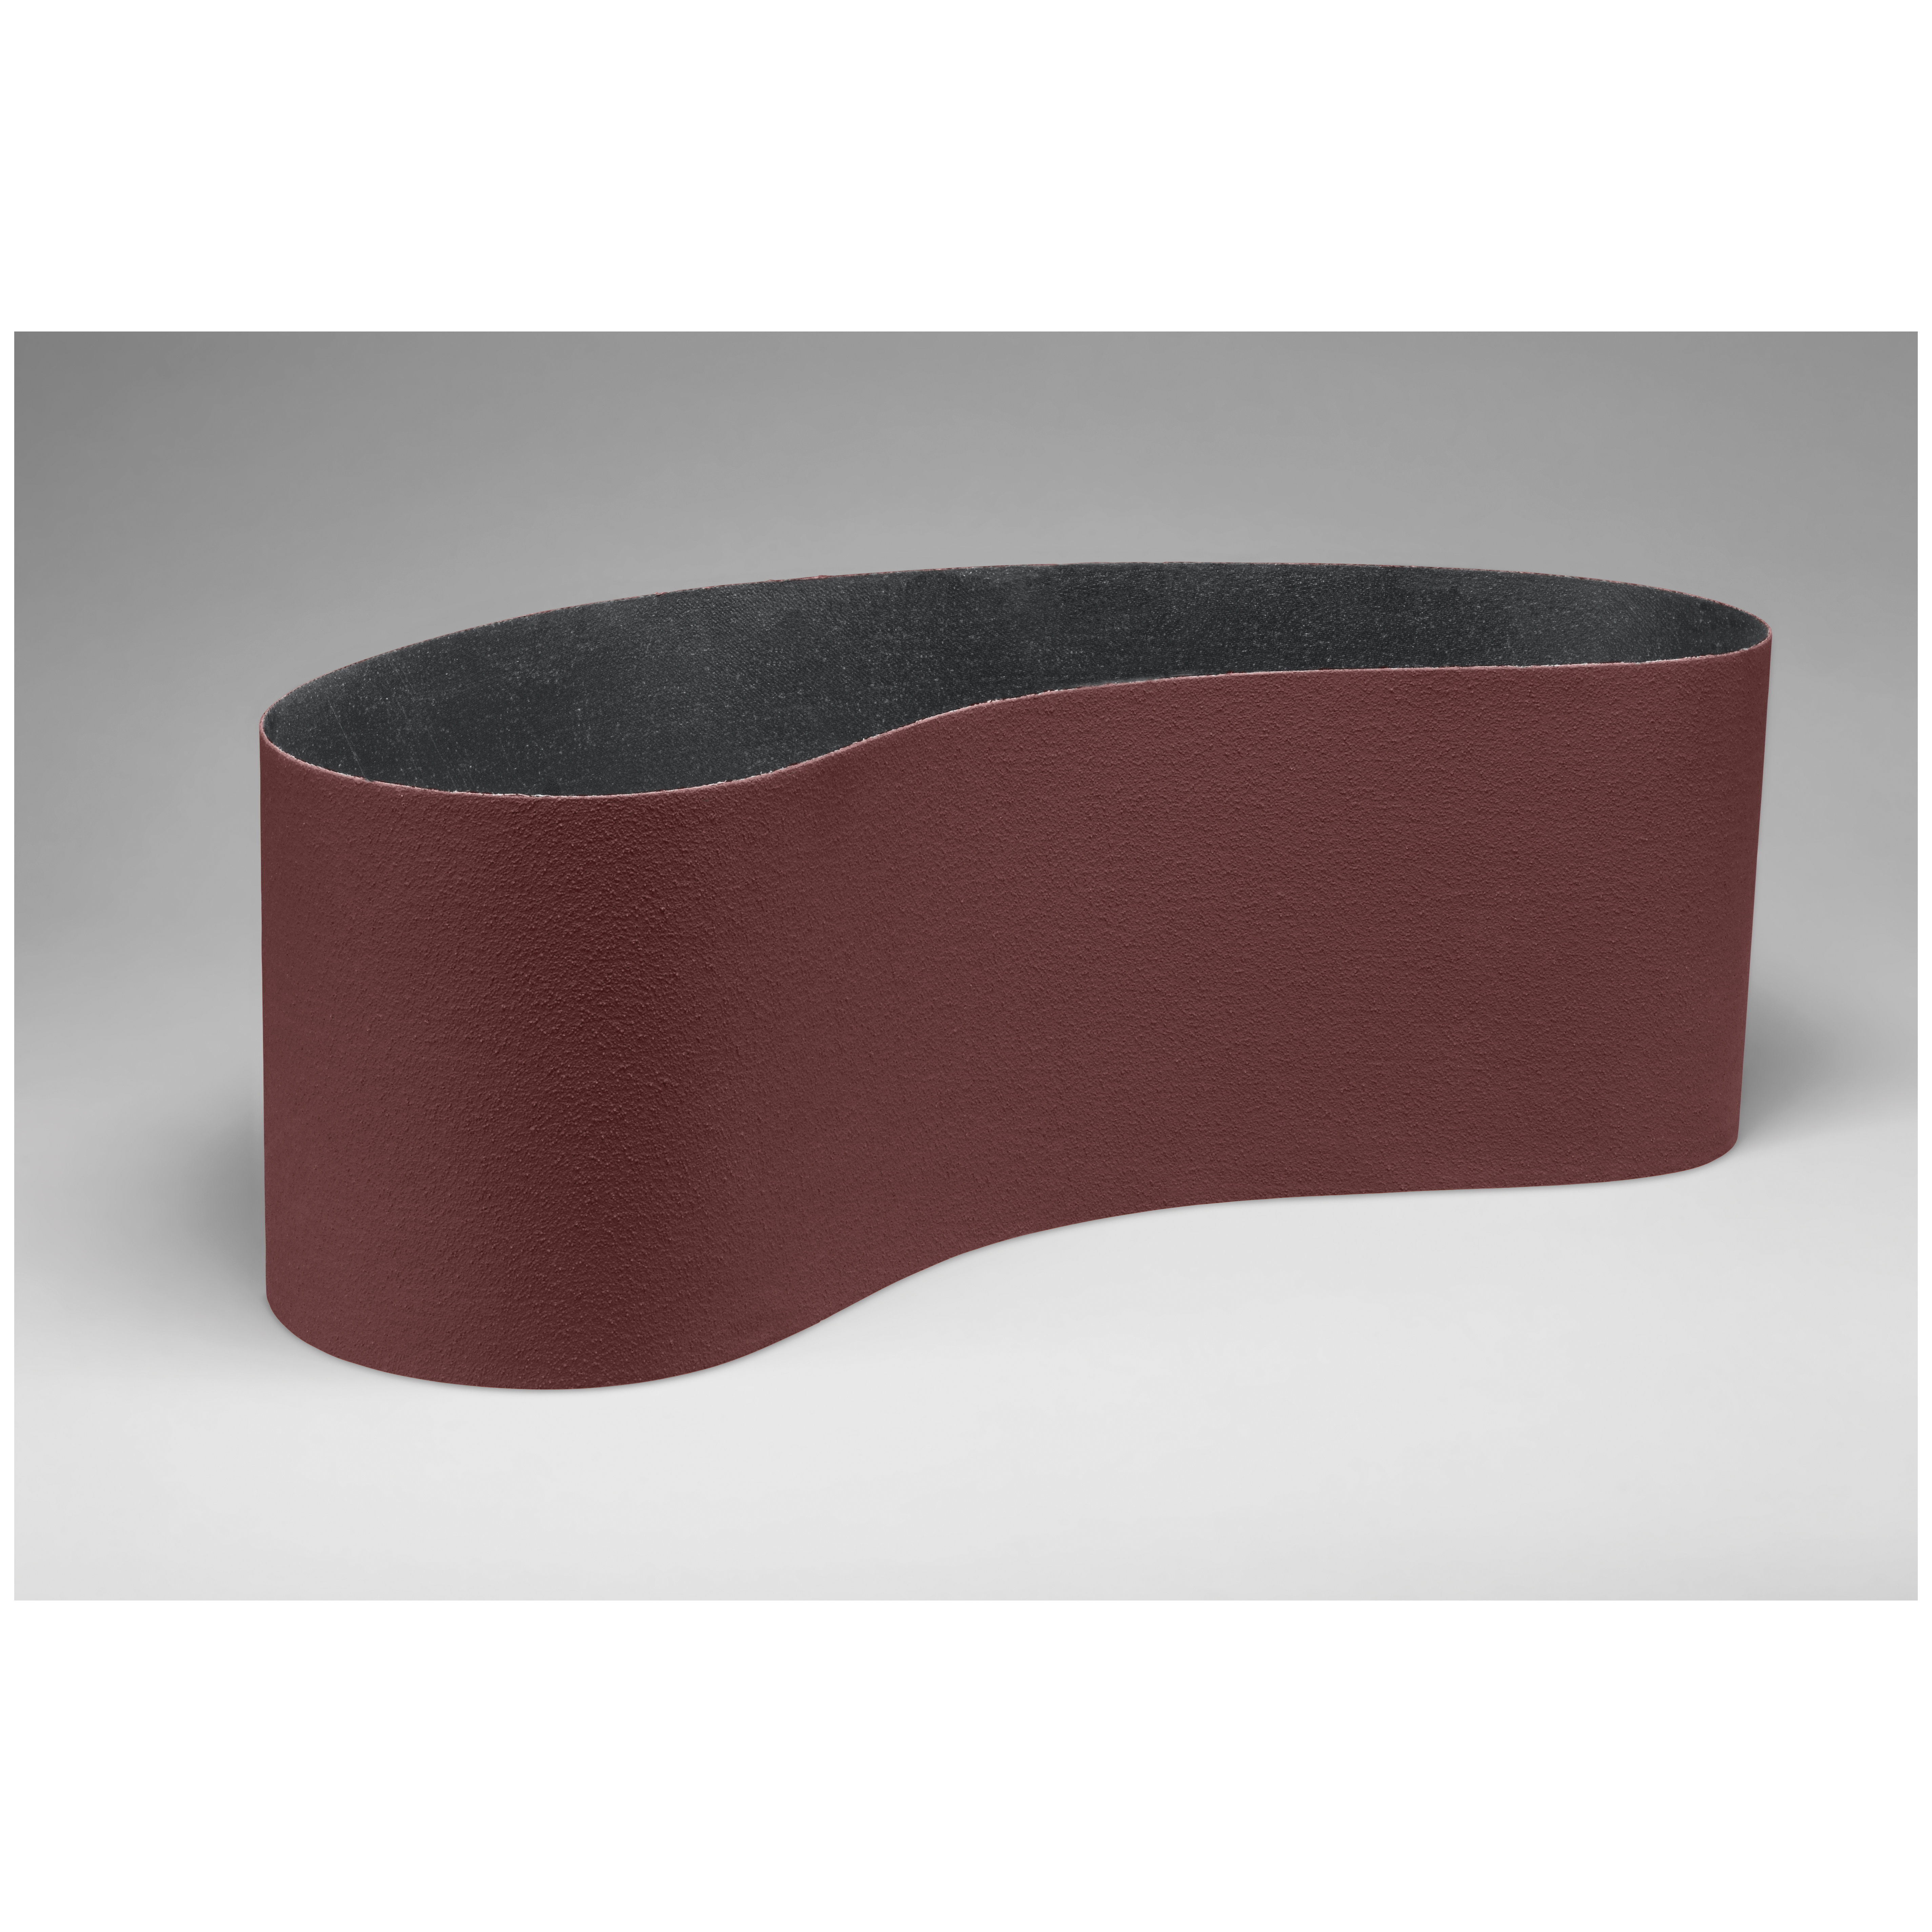 3M™ 051144-26894 File Coated Abrasive Belt, 1/2 in W x 12 in L, 80 Grit, Medium Grade, Aluminum Oxide Abrasive, Rayon Backing